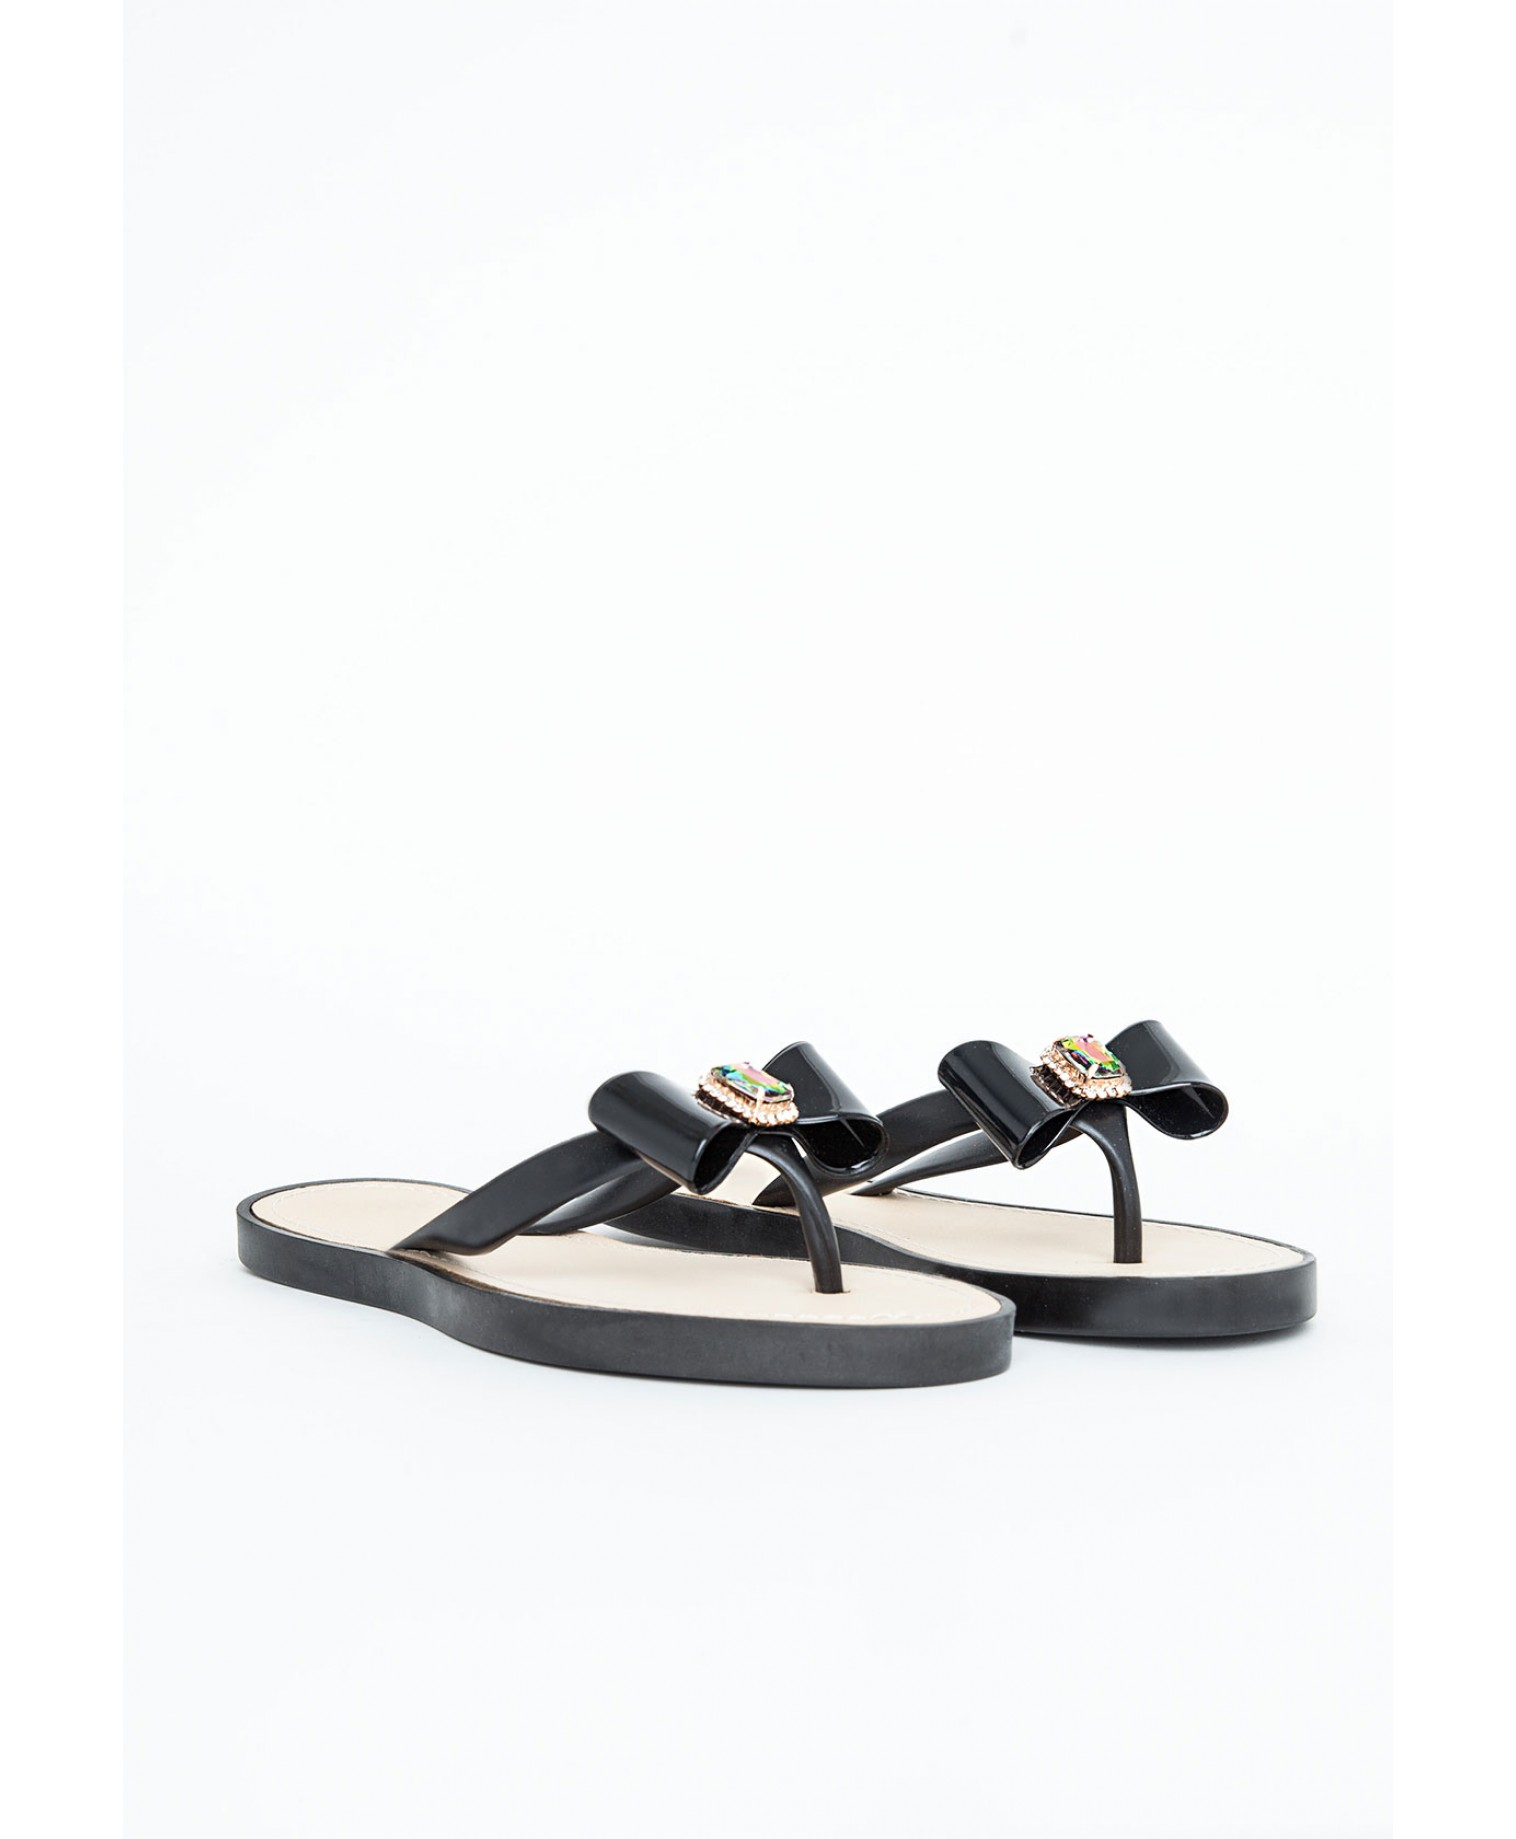 Natsuko flipflops with bow and gem detailing in black